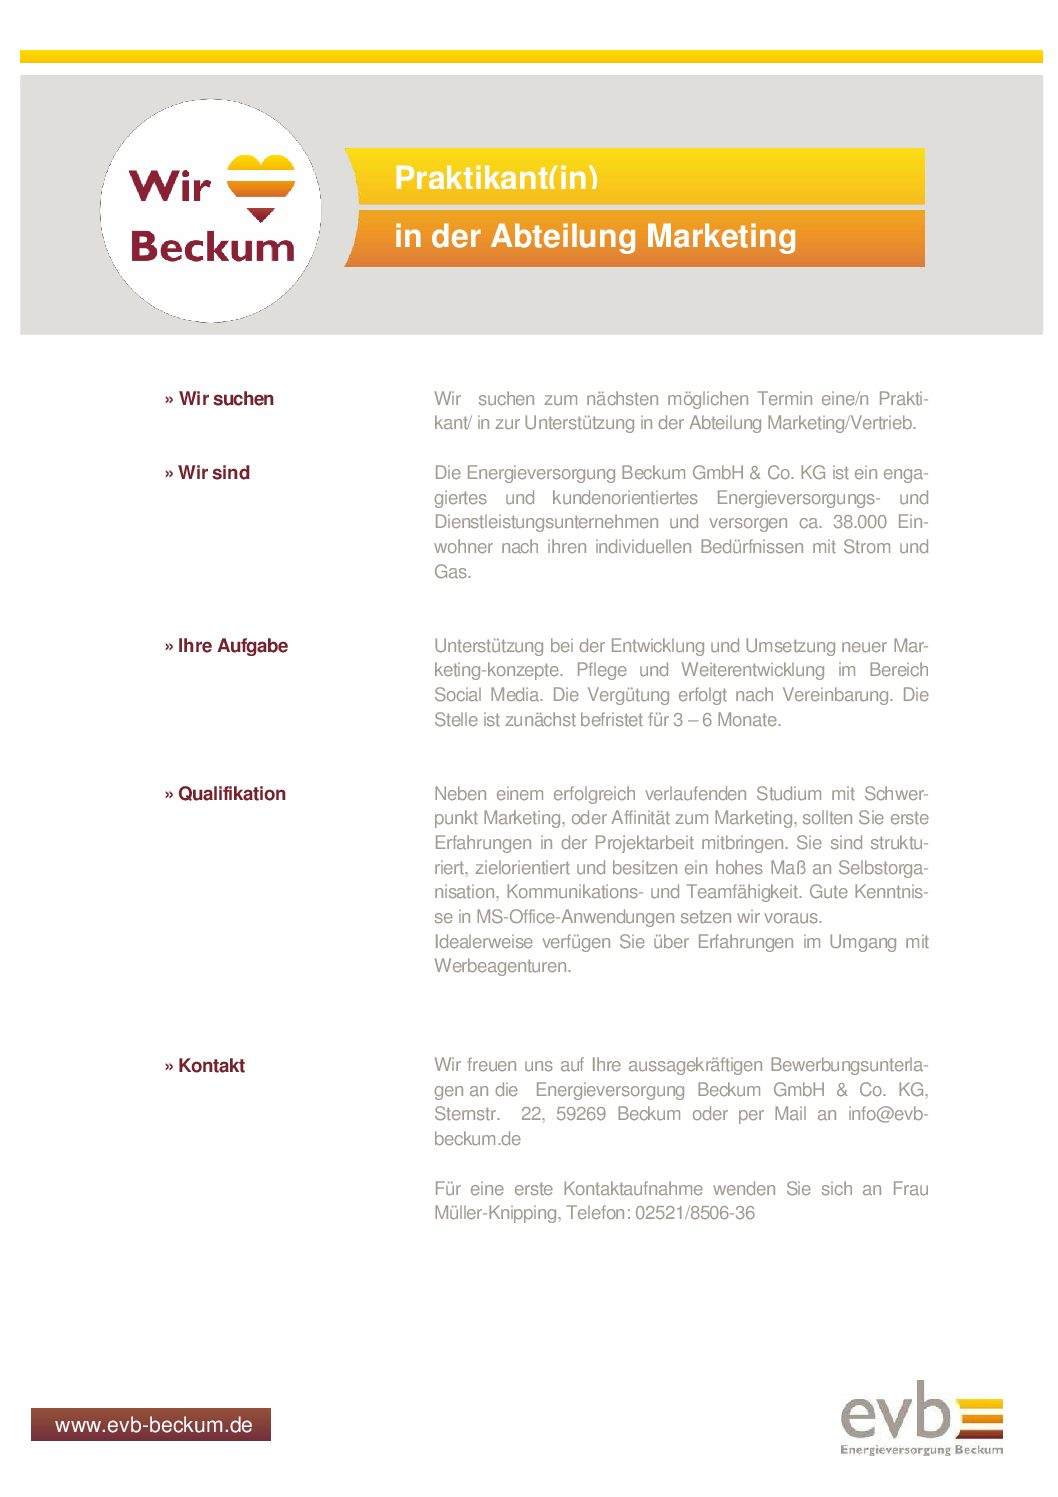 Praktikant in der Abteilung Marketing gesucht